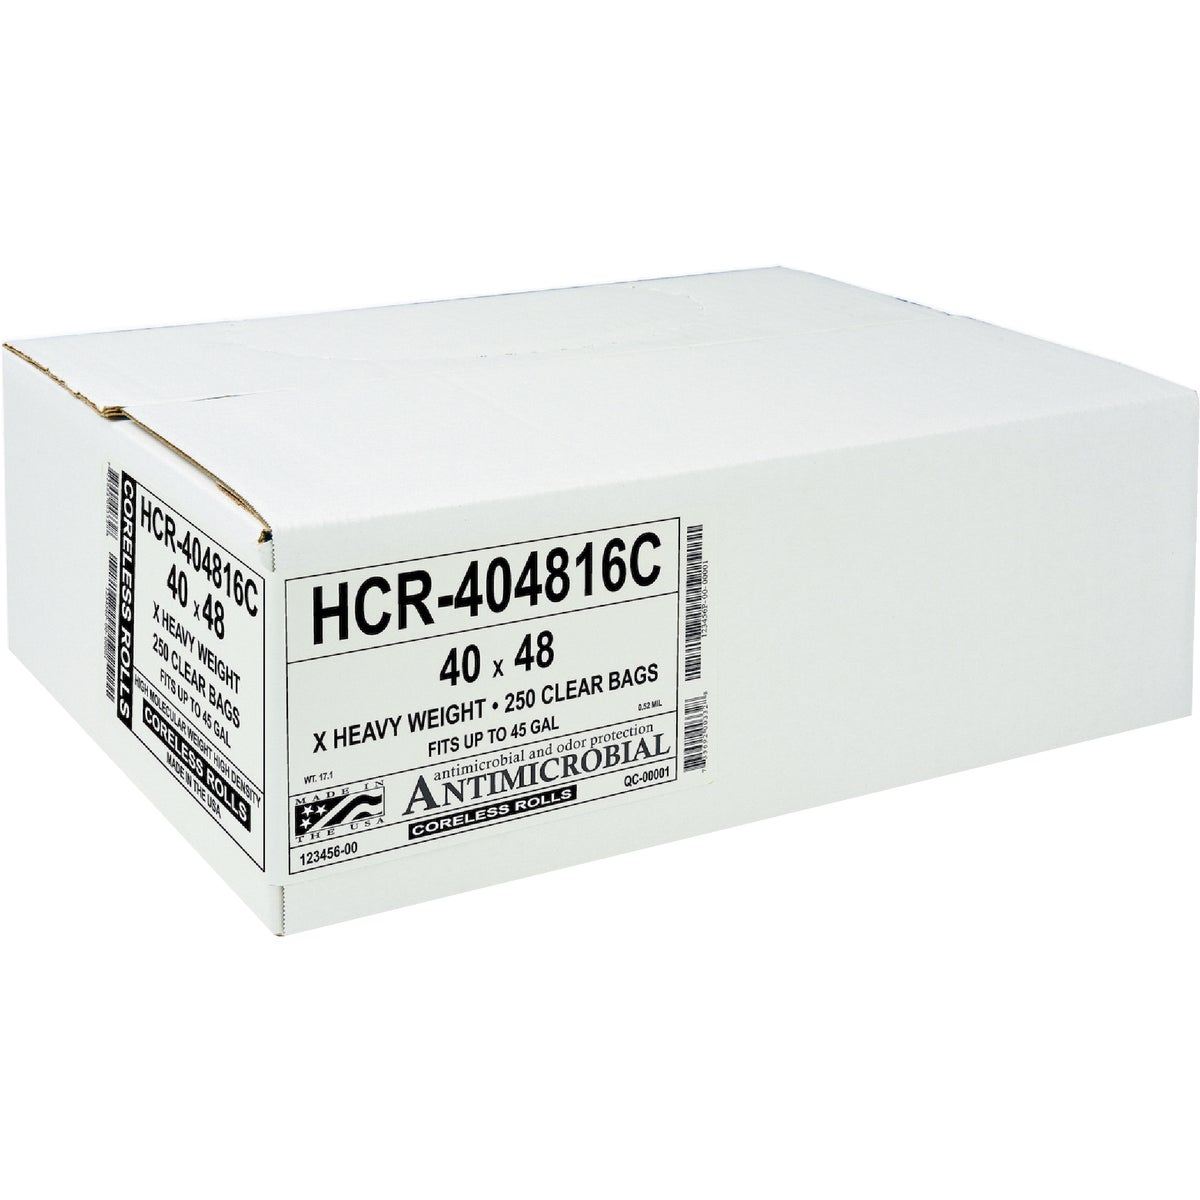 250CT 40X48 CAN LINER - HC-404816C by Aluf Plastics Incom